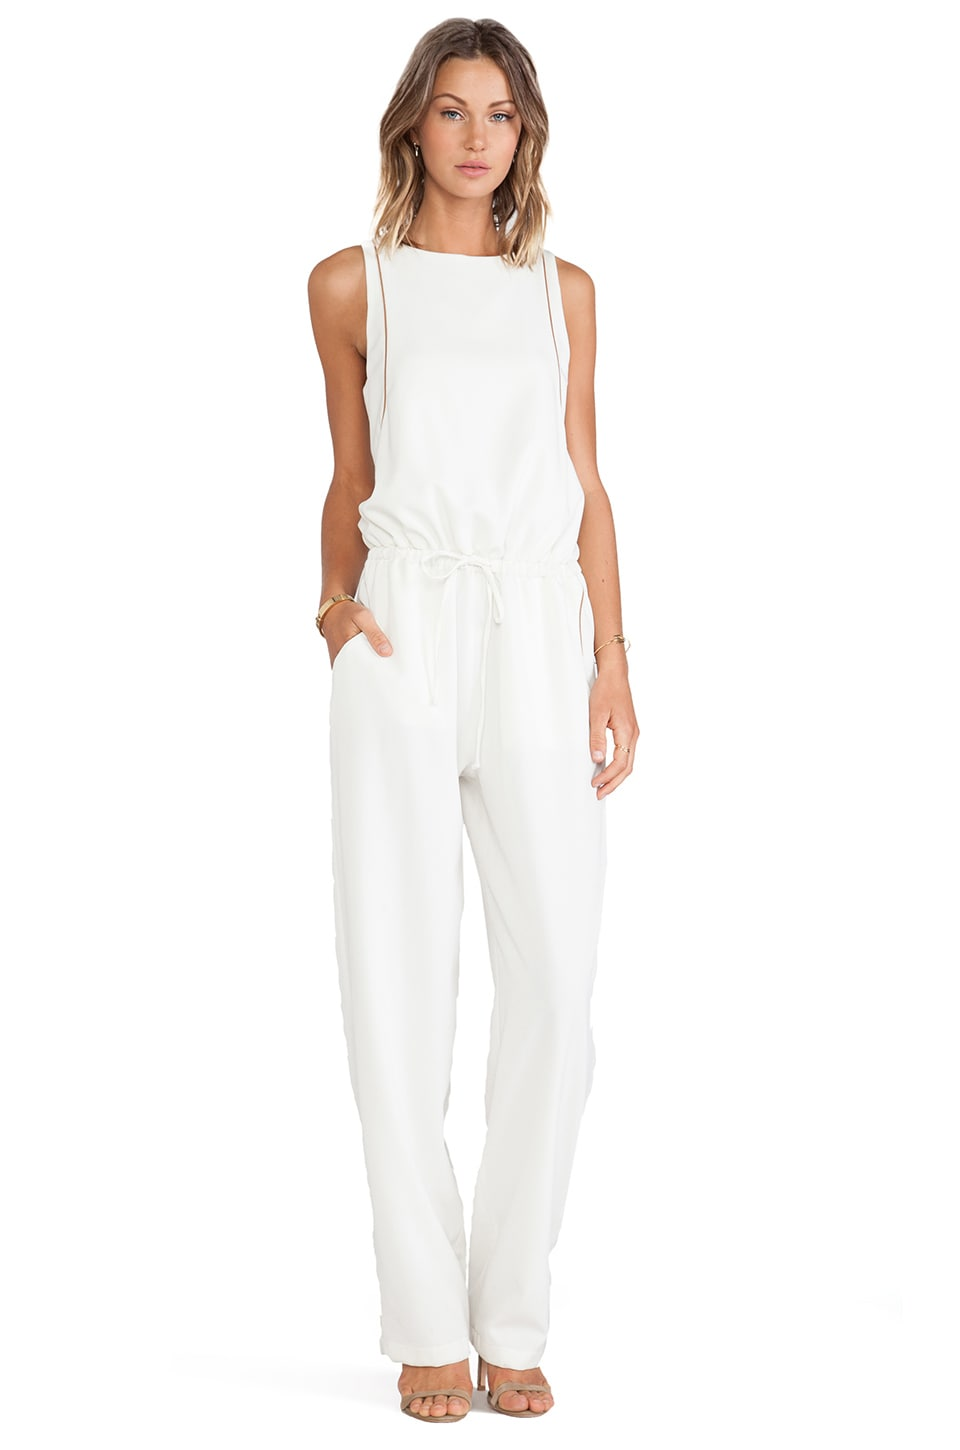 Assali Plink Jumpsuit with Brown Piping in Winter White